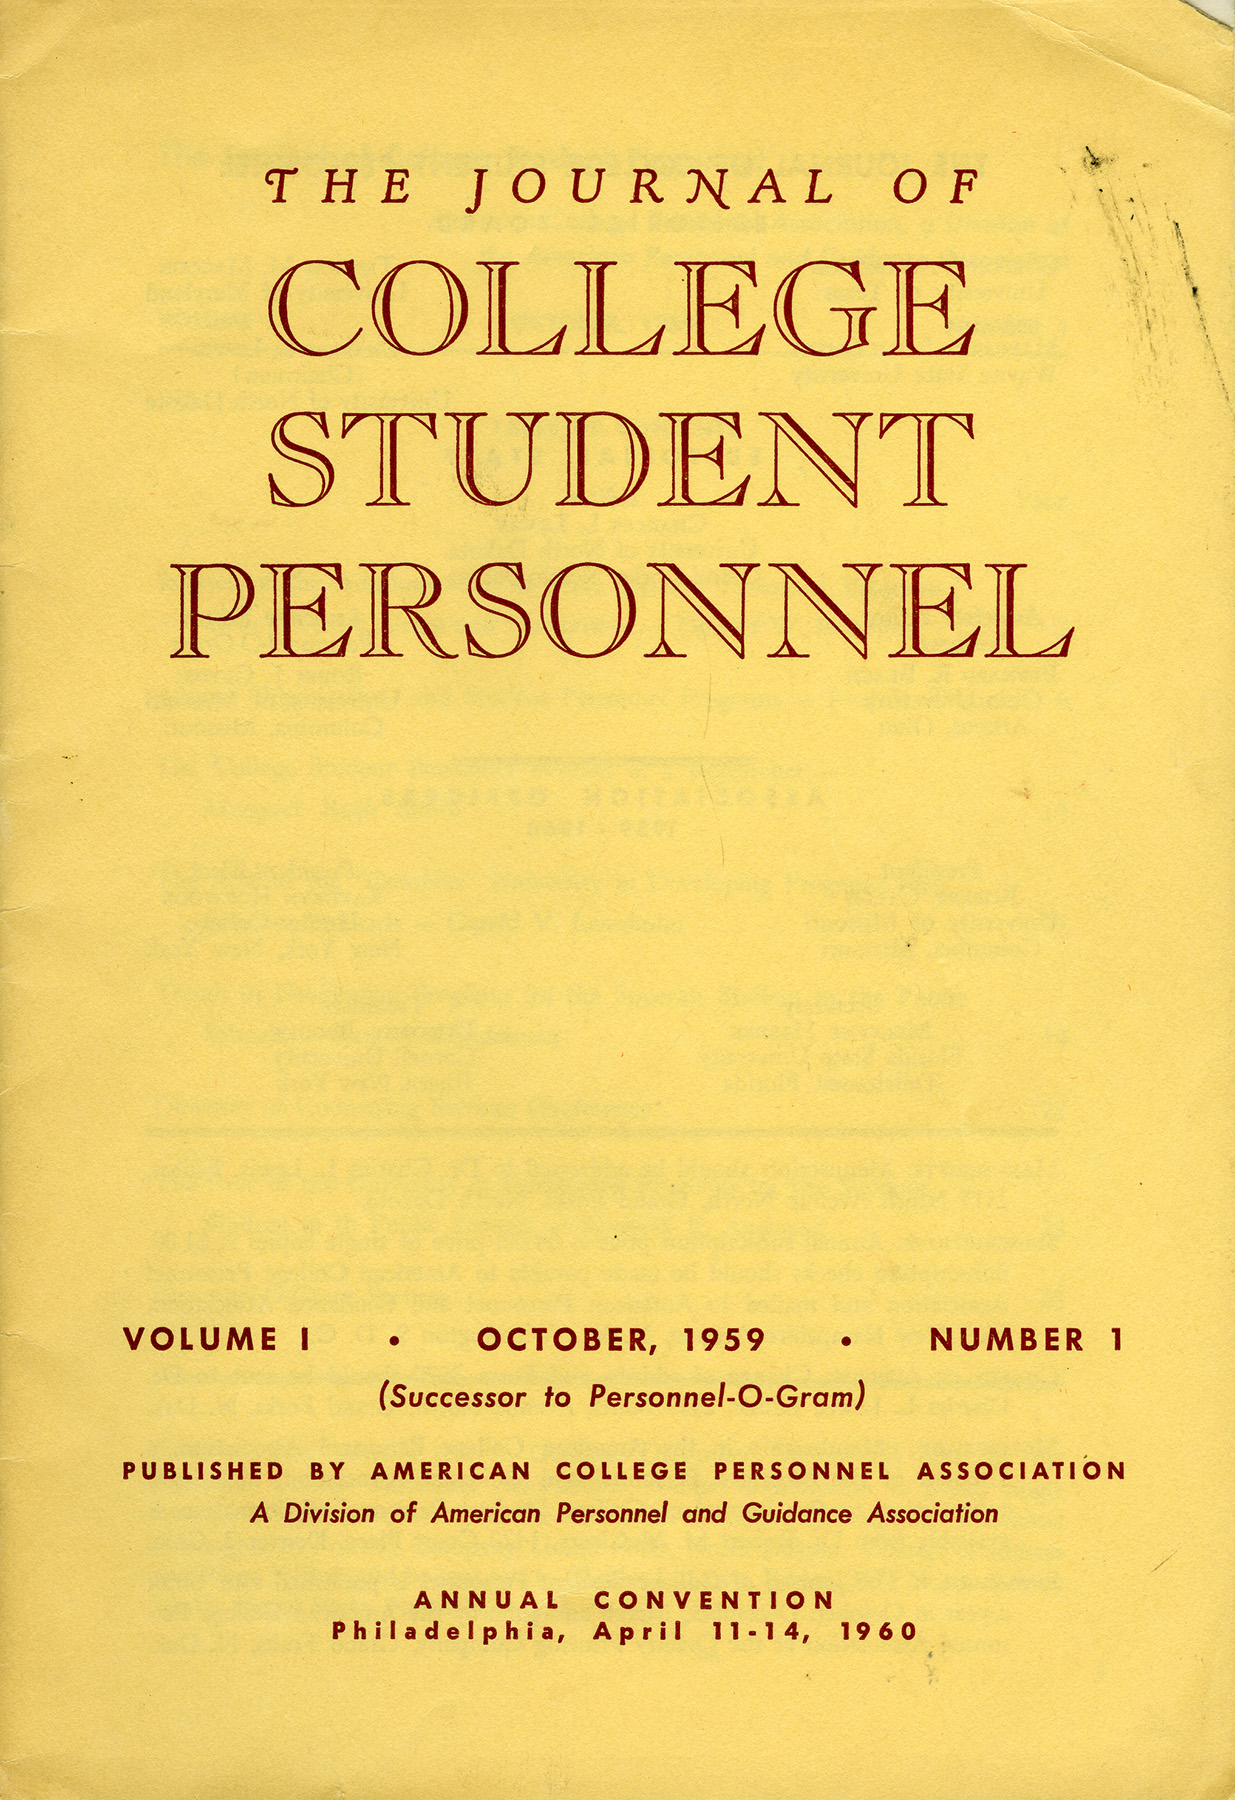 The Journal of College Student Personnel replaces the Personnel-O-Gram